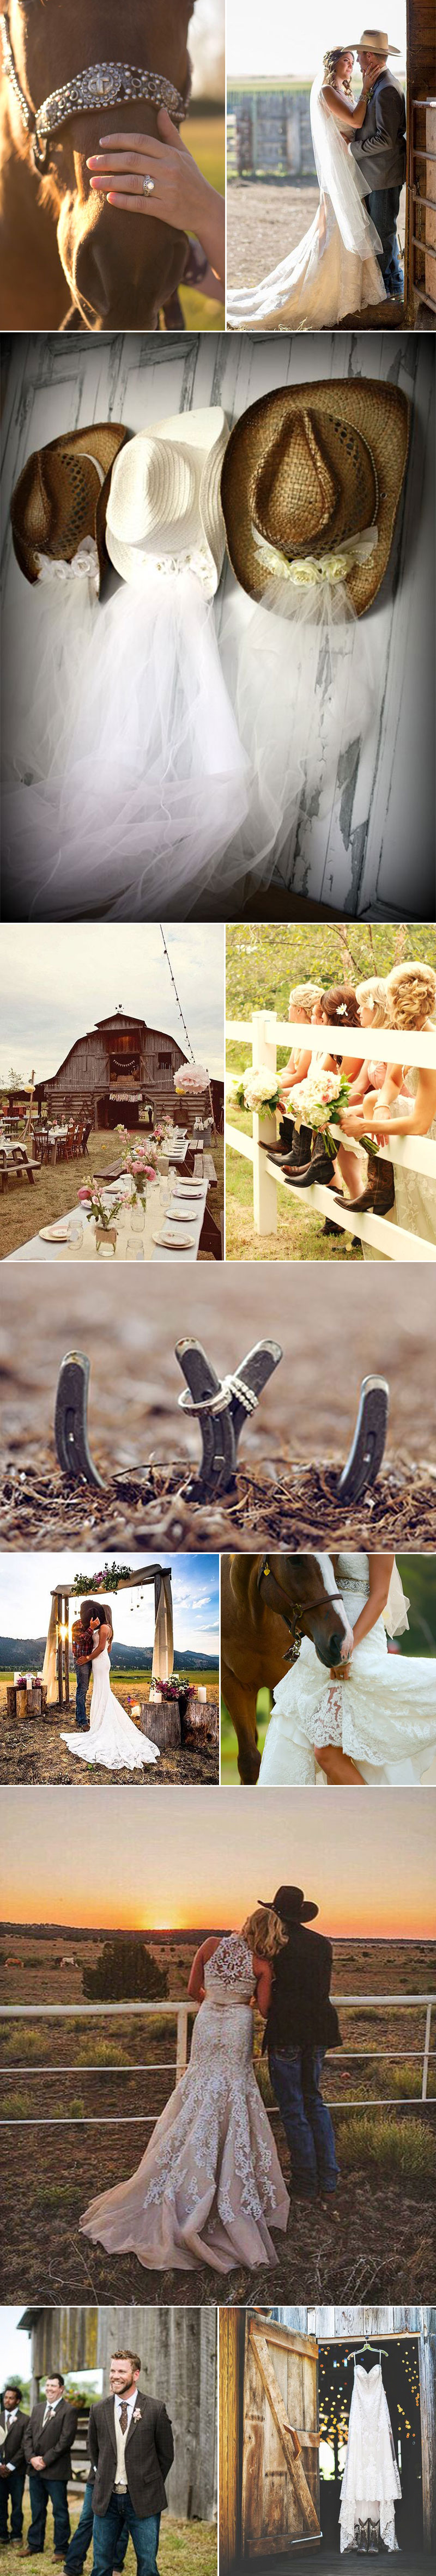 Rodeo Weddings | Cowboy Grooms